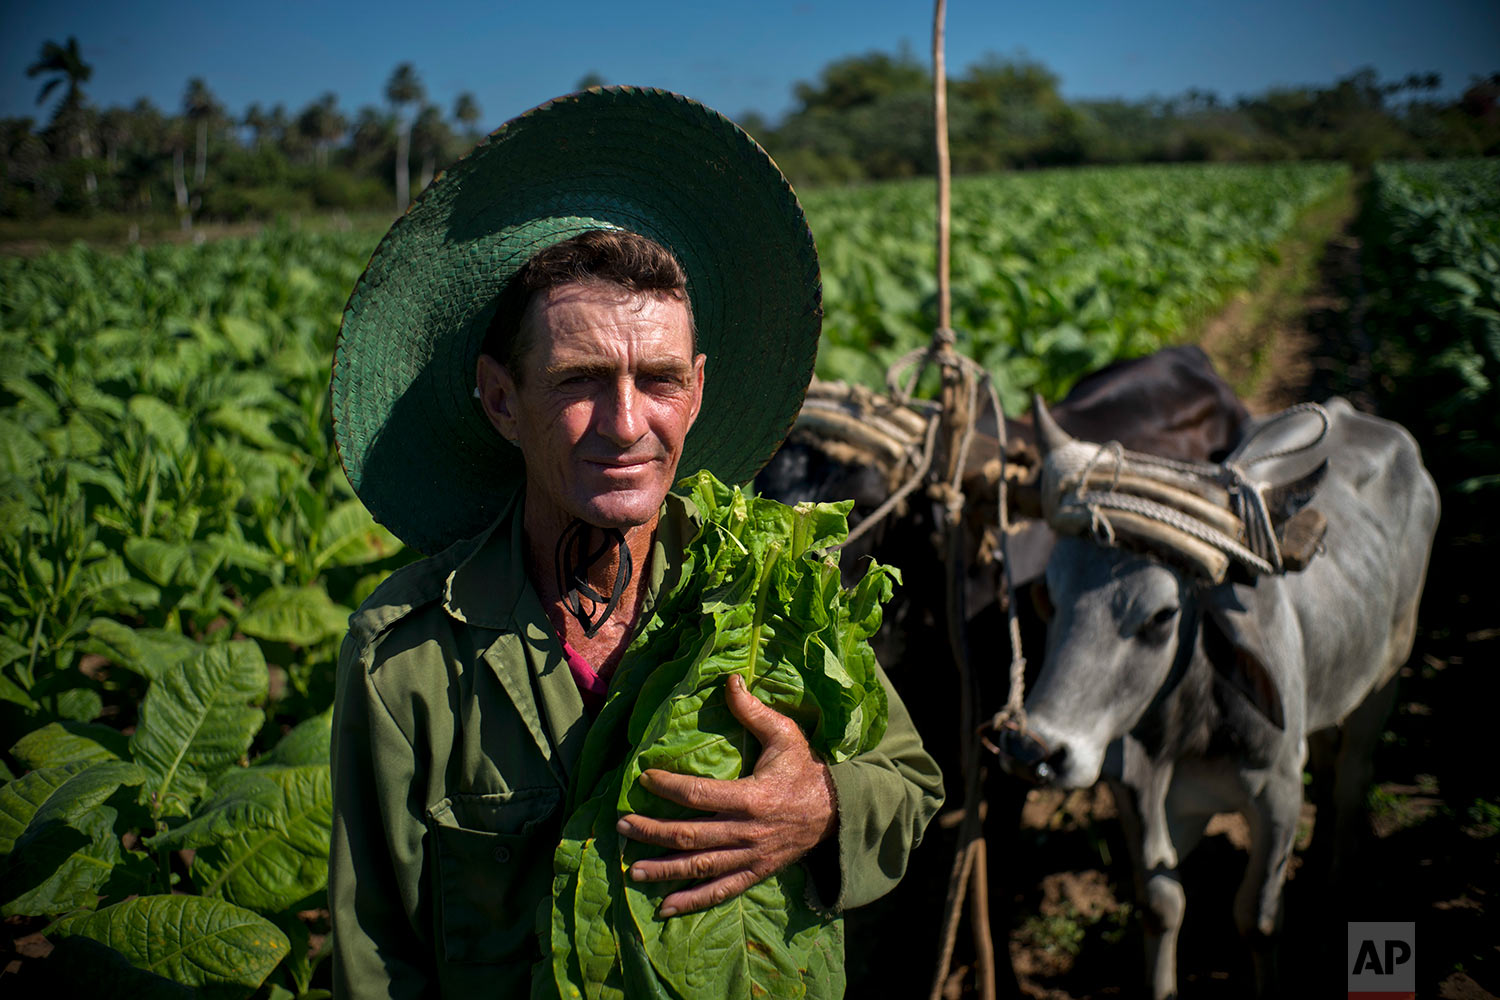 In this Feb. 27, 2018 photo, tobacco picker Jorge Luis Leon Becerra poses with his oxen and a handful of freshly harvested tobacco leaves, at the Martinez tobacco farm in Cuba's western province of Pinar del Rio. (AP Photo/Ramon Espinosa)